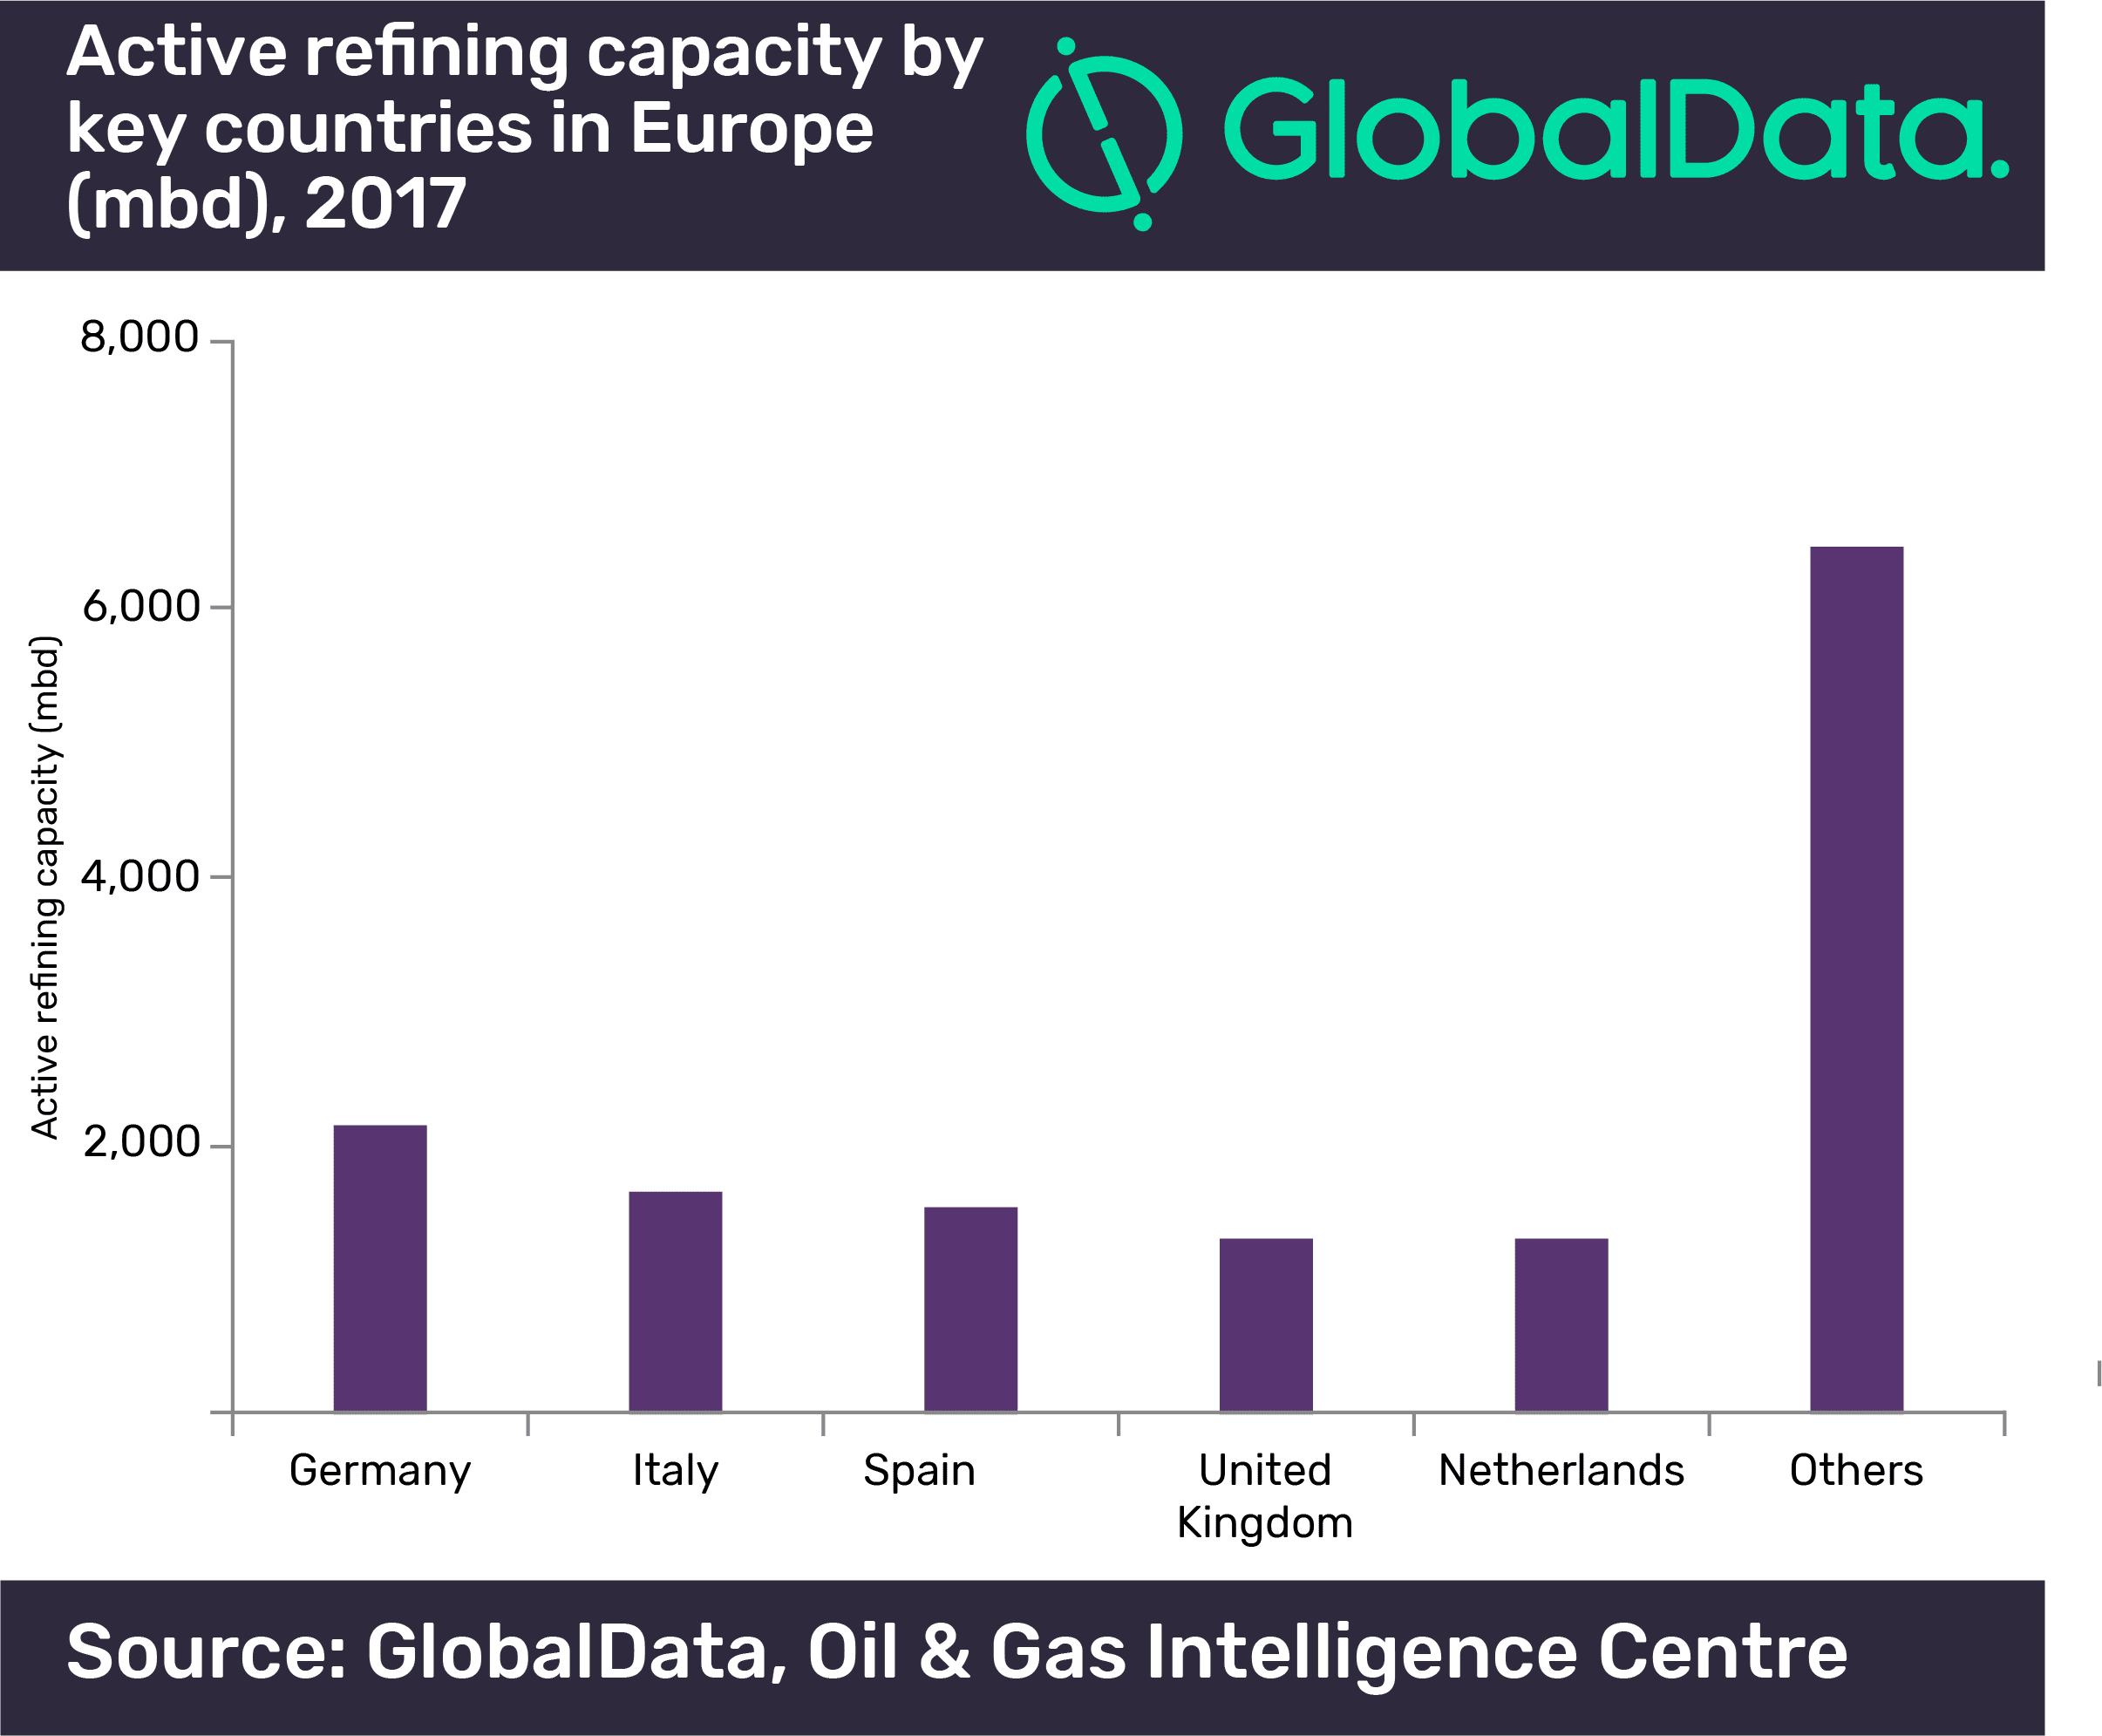 Germany, Italy and Spain together contribute more than 35% to refining capacity in Europe, says GlobalData